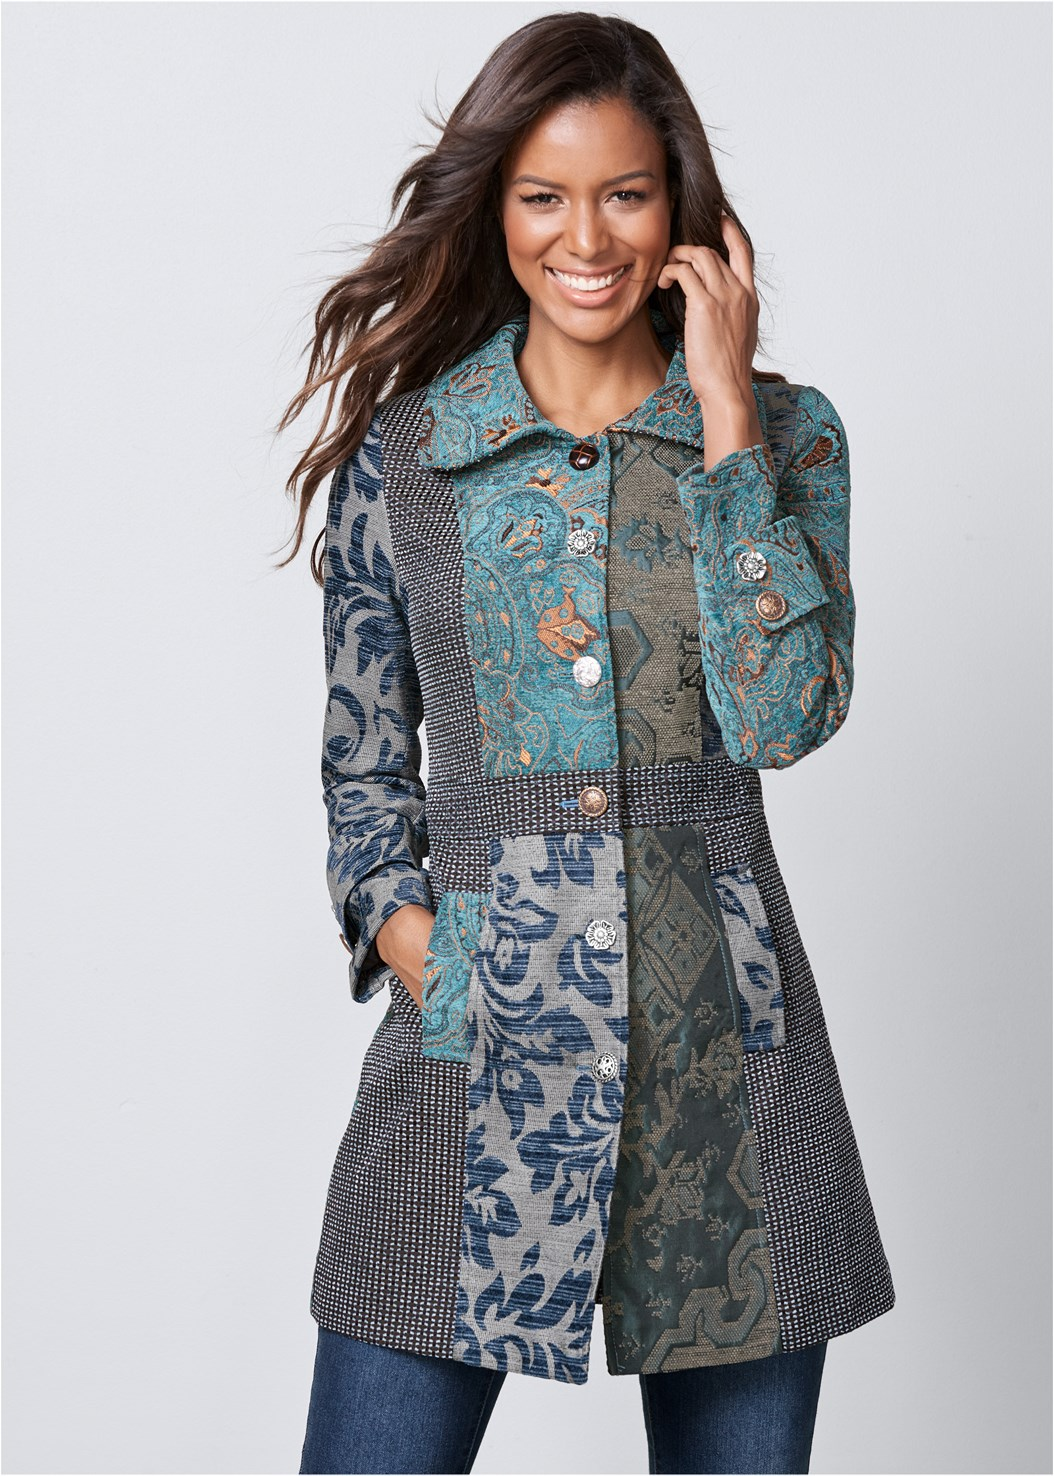 Mixed Print Coat,Basic Cami Two Pack,Mid Rise Color Skinny Jeans